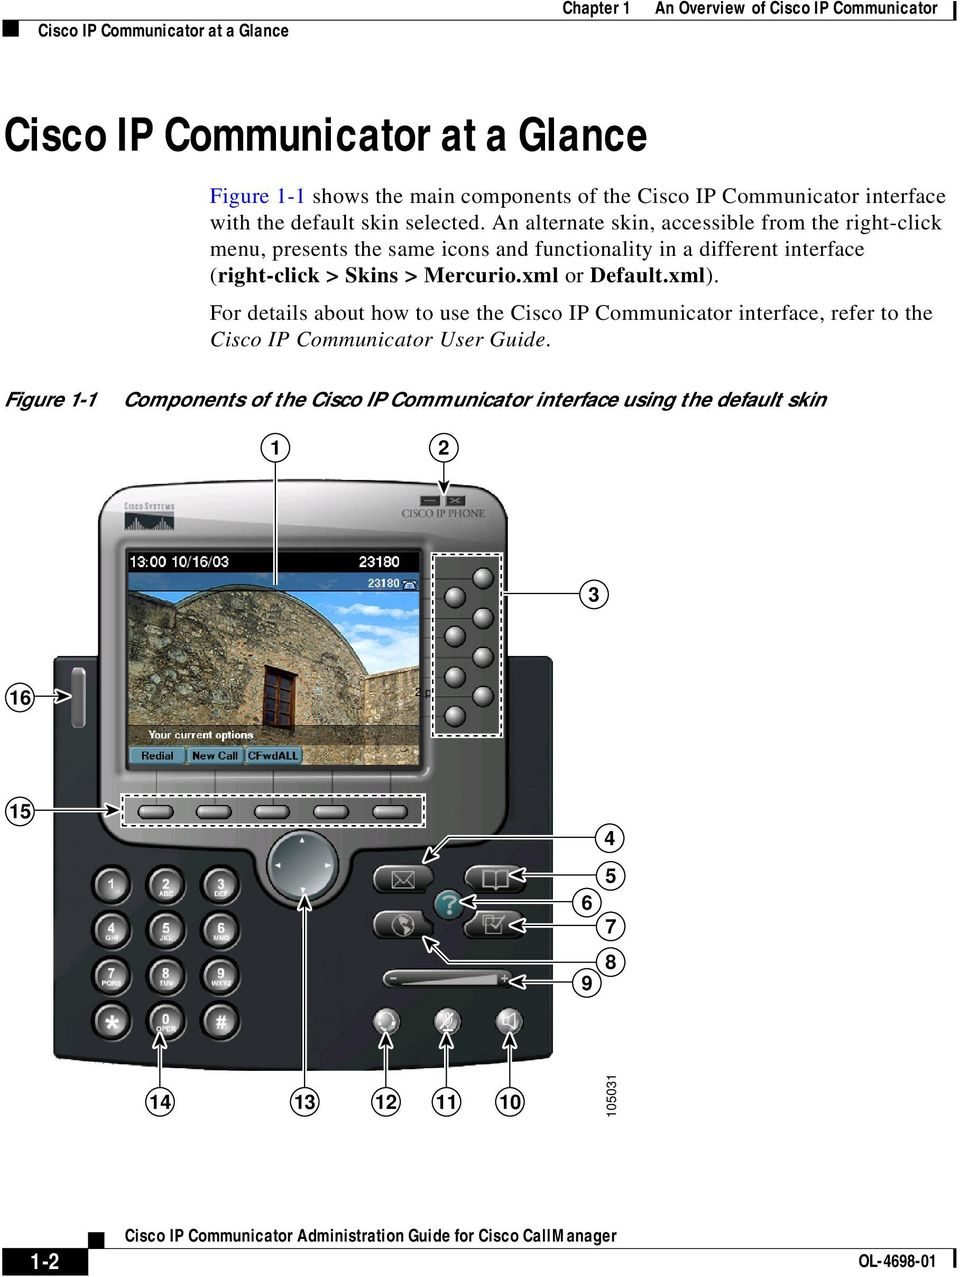 An Overview of Cisco IP Communicator - PDF